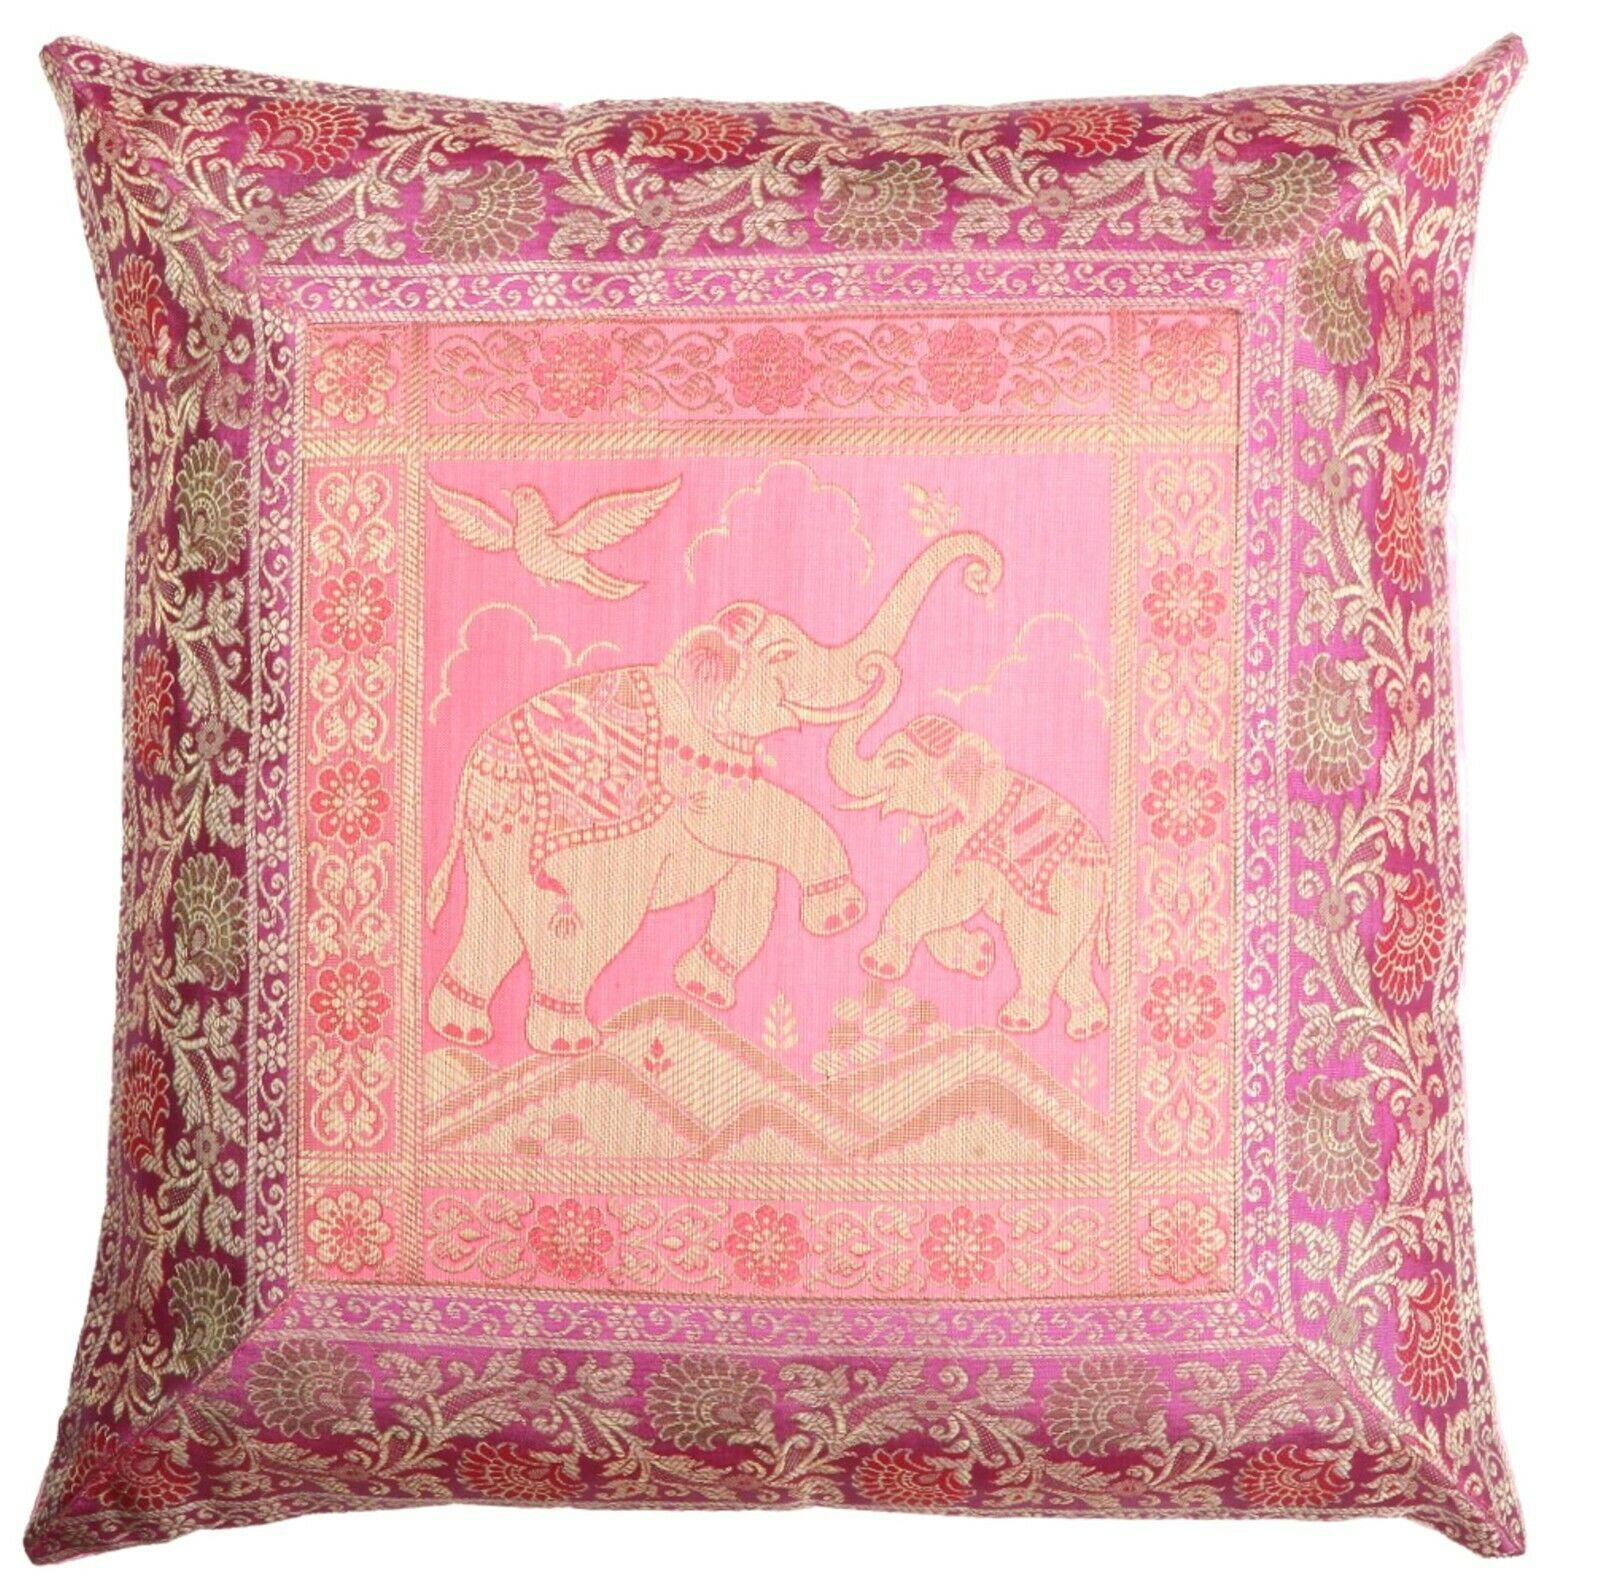 "Primary image for 16"" Traditional Indian Brocade Elephant Design Cushion/Pillow Cover Pink"